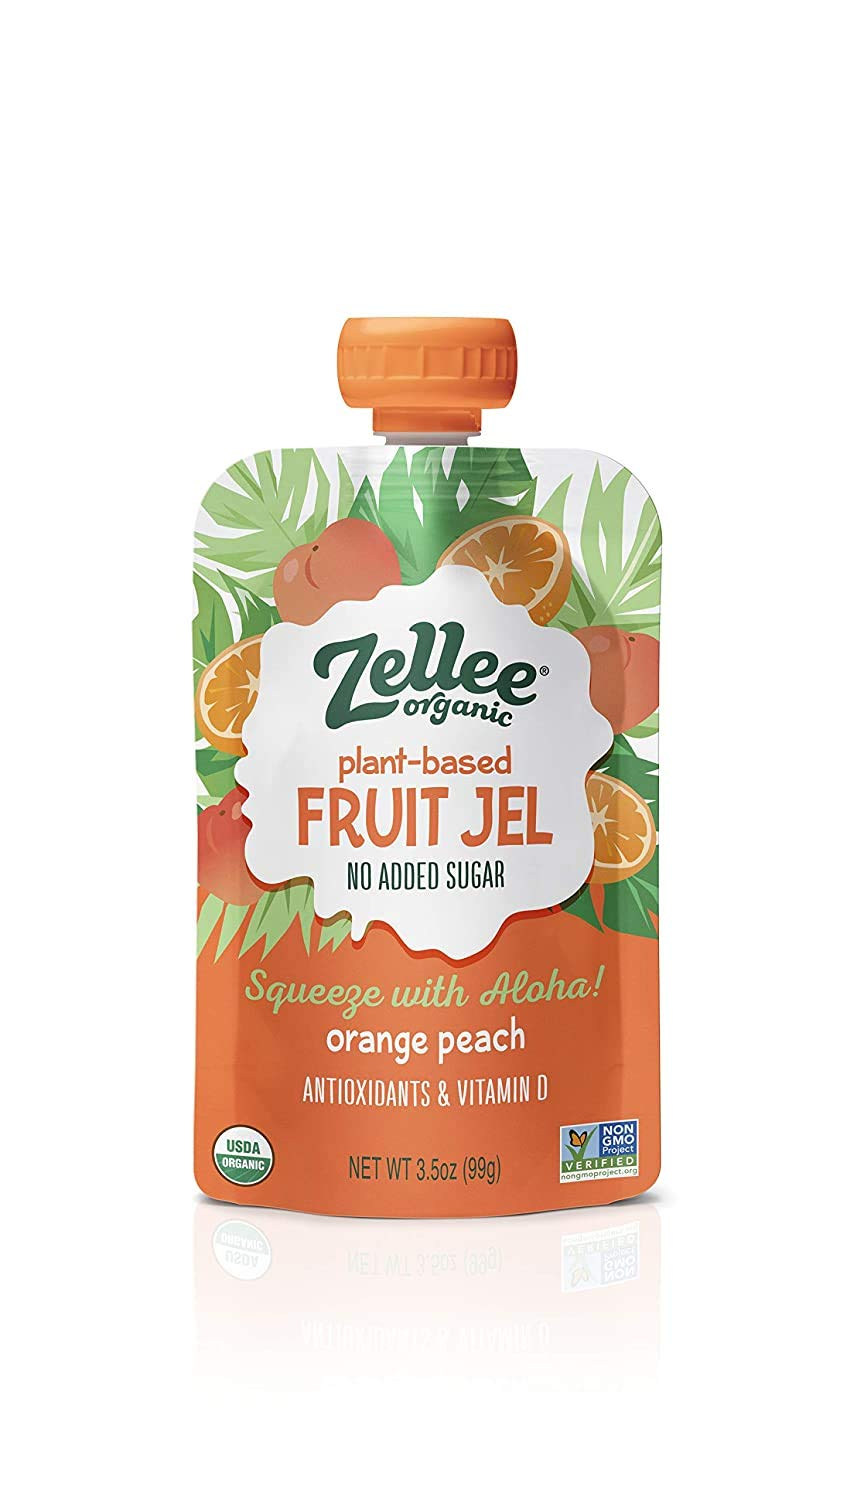 Zellee Organic Fruit Jel Pouches | Orange Peach | 12 pack | Immunity Boosting Vitamins A, C & D | Gluten-Free, Vegan, Plant-Based, No Added Sugar, Antioxidant Rich | Healthy Snack for Adults & Kids